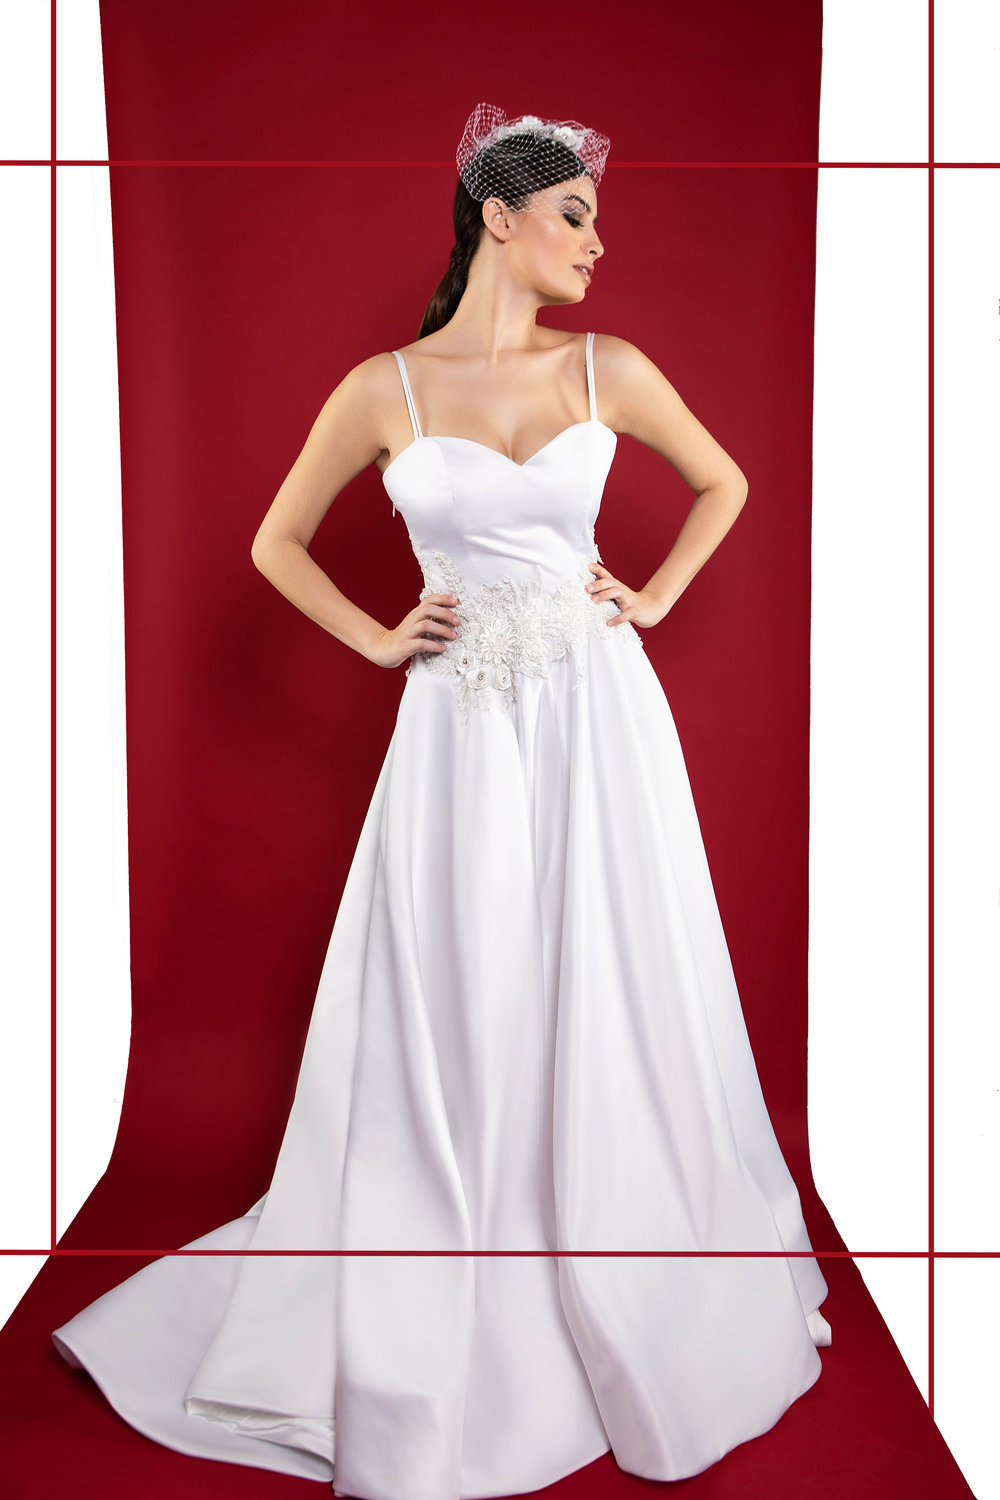 Style: Gardenia  Sweetheart neckline ballroom wedding gown with chapel length train. Hand sewn beaded applique details at waist. Double straps, low back and fully lined gown with a horsehair braid hemline. Pictured with a custom birdcage veil.  Custom listing starting @ $3,800